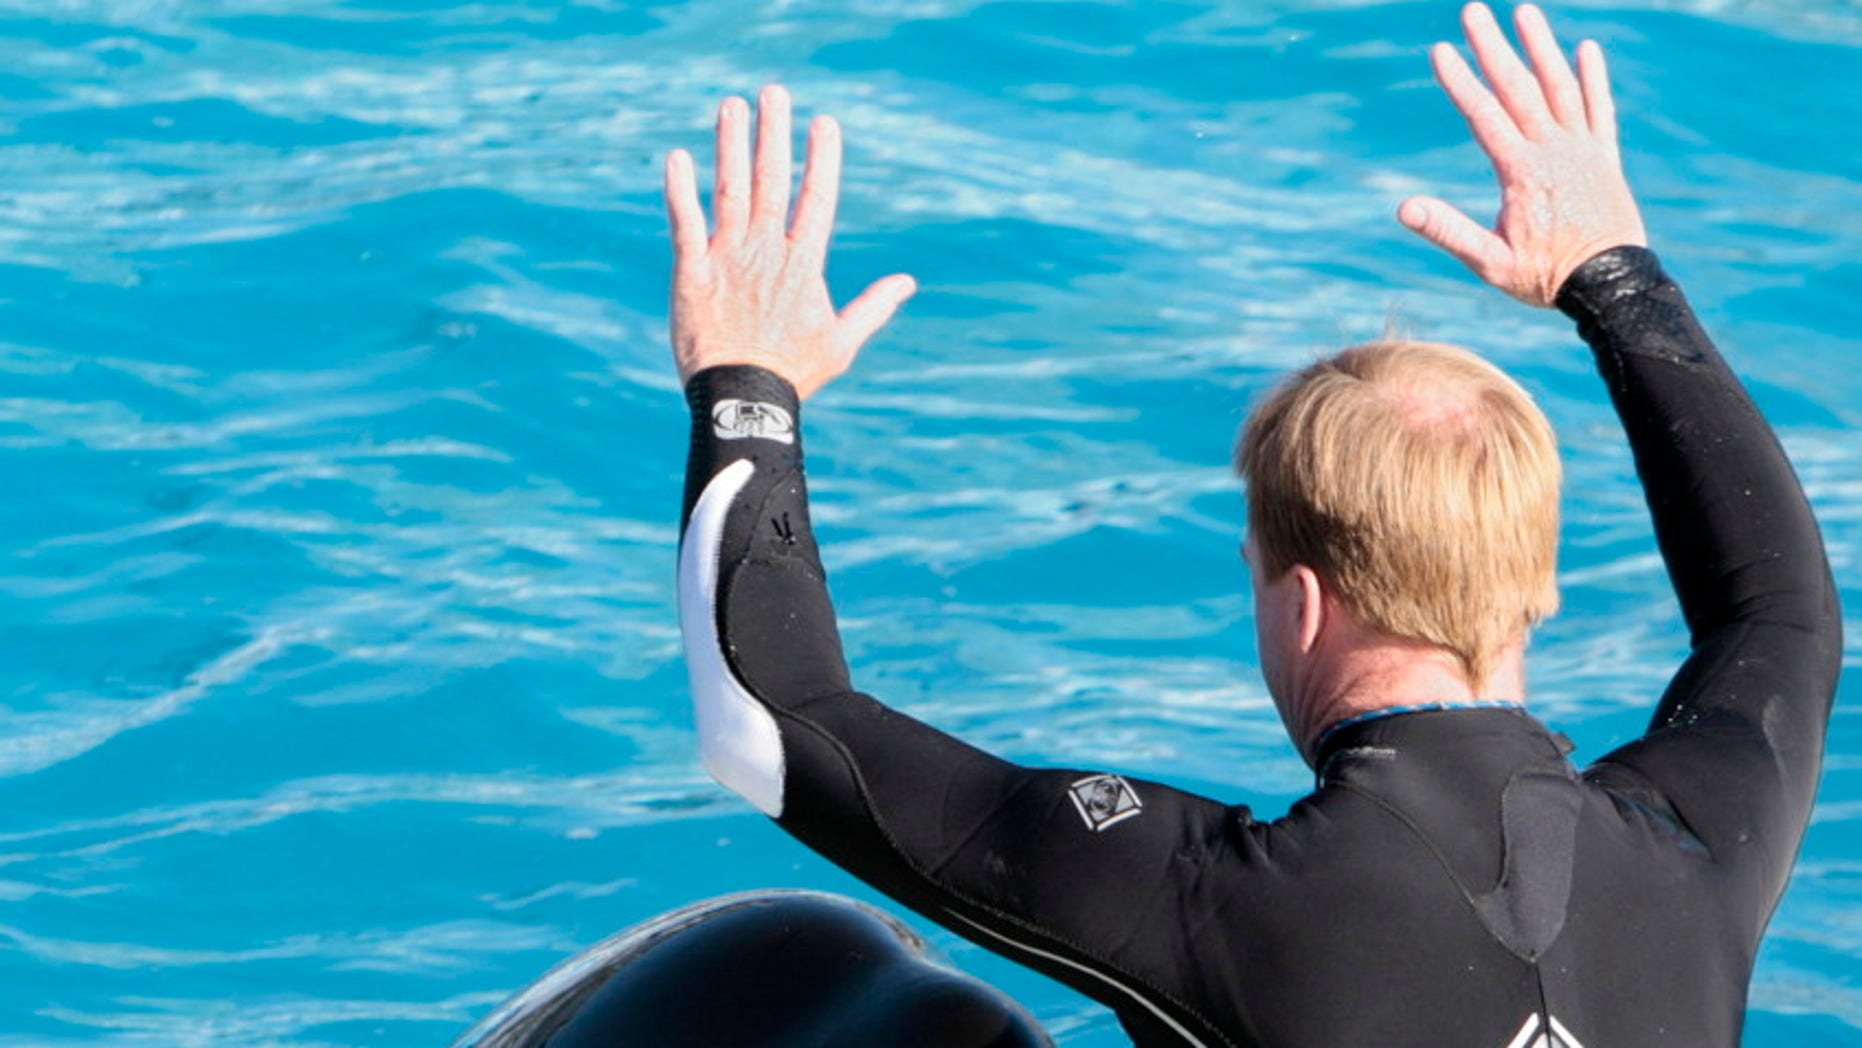 A SeaWorld trainer interacts with one of SeaWorld's killer whales during a show in San Diego. SeaWorld will end its orca shows at its San Diego park by 2017.